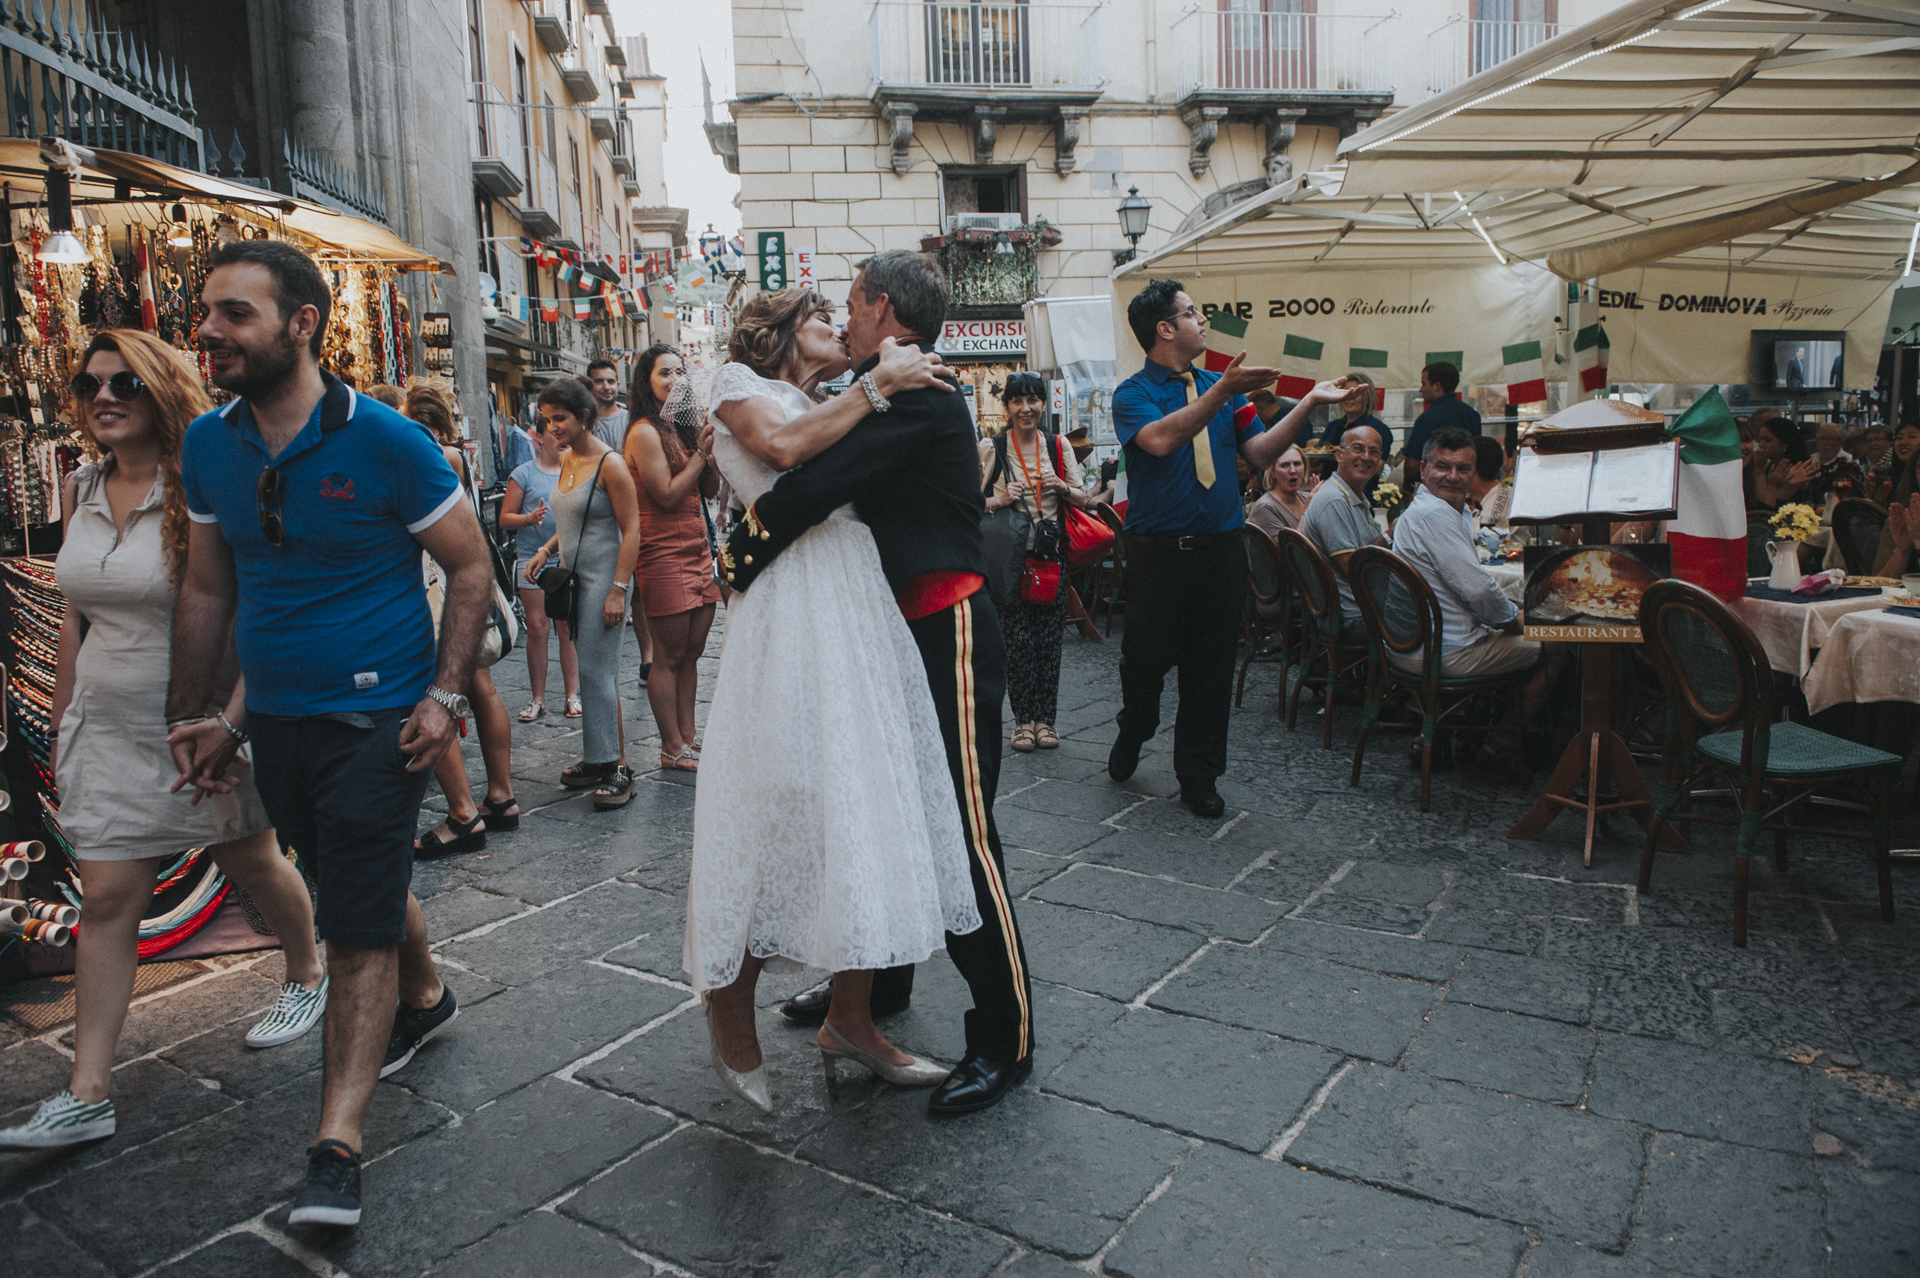 """Once hundreds of people saw the bride and groom they started a warm applause and the waiter of the restaurant incite people sitted to have a toast with them. At the """"Kiss"""" request ...well, that is the photo at Sorrento, Amalfi Coast, Italy"""